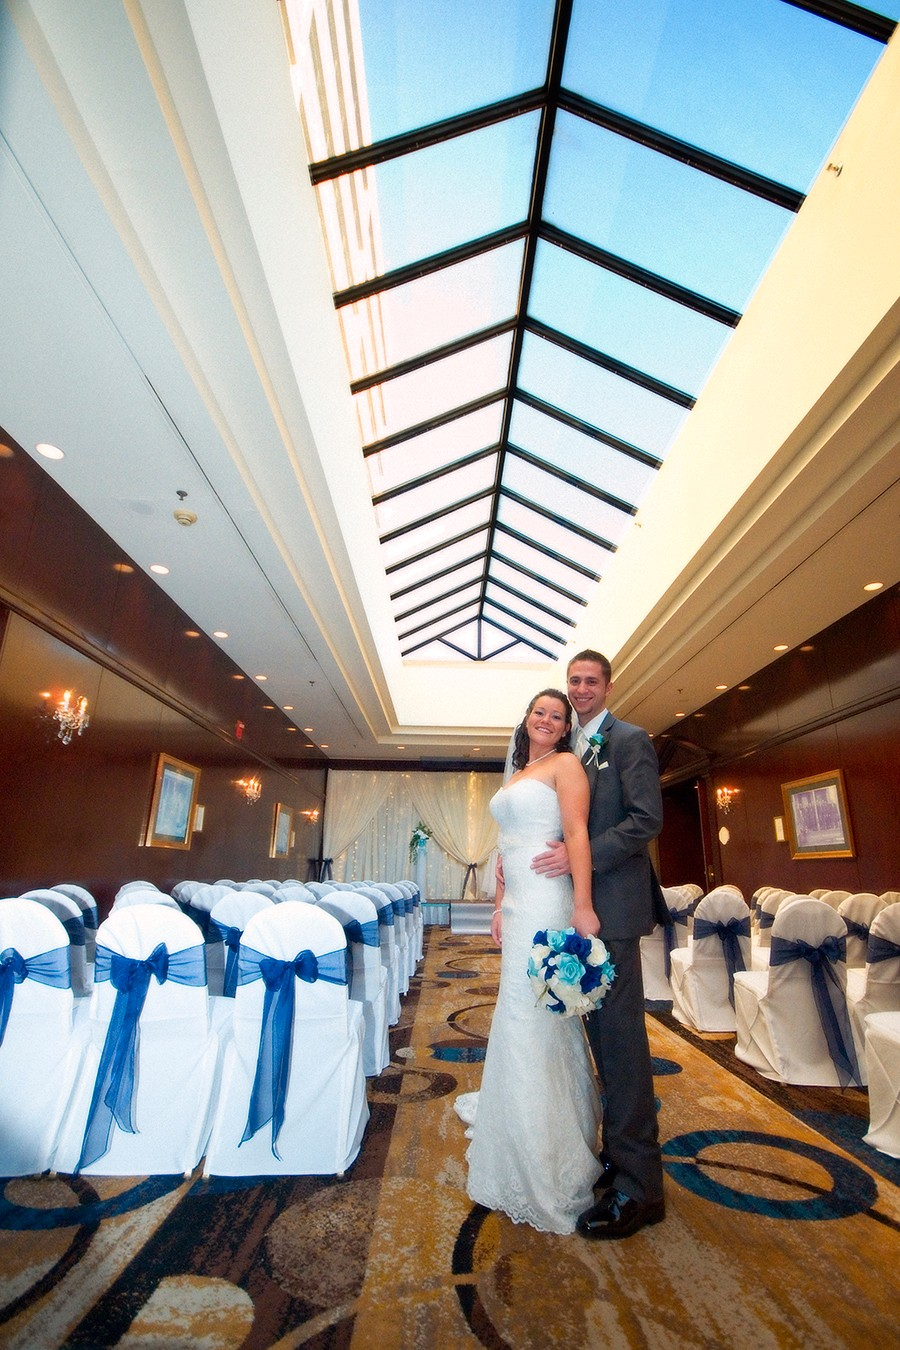 Amy & Bennett - A New Year's Eve Bash by RealBridals.com